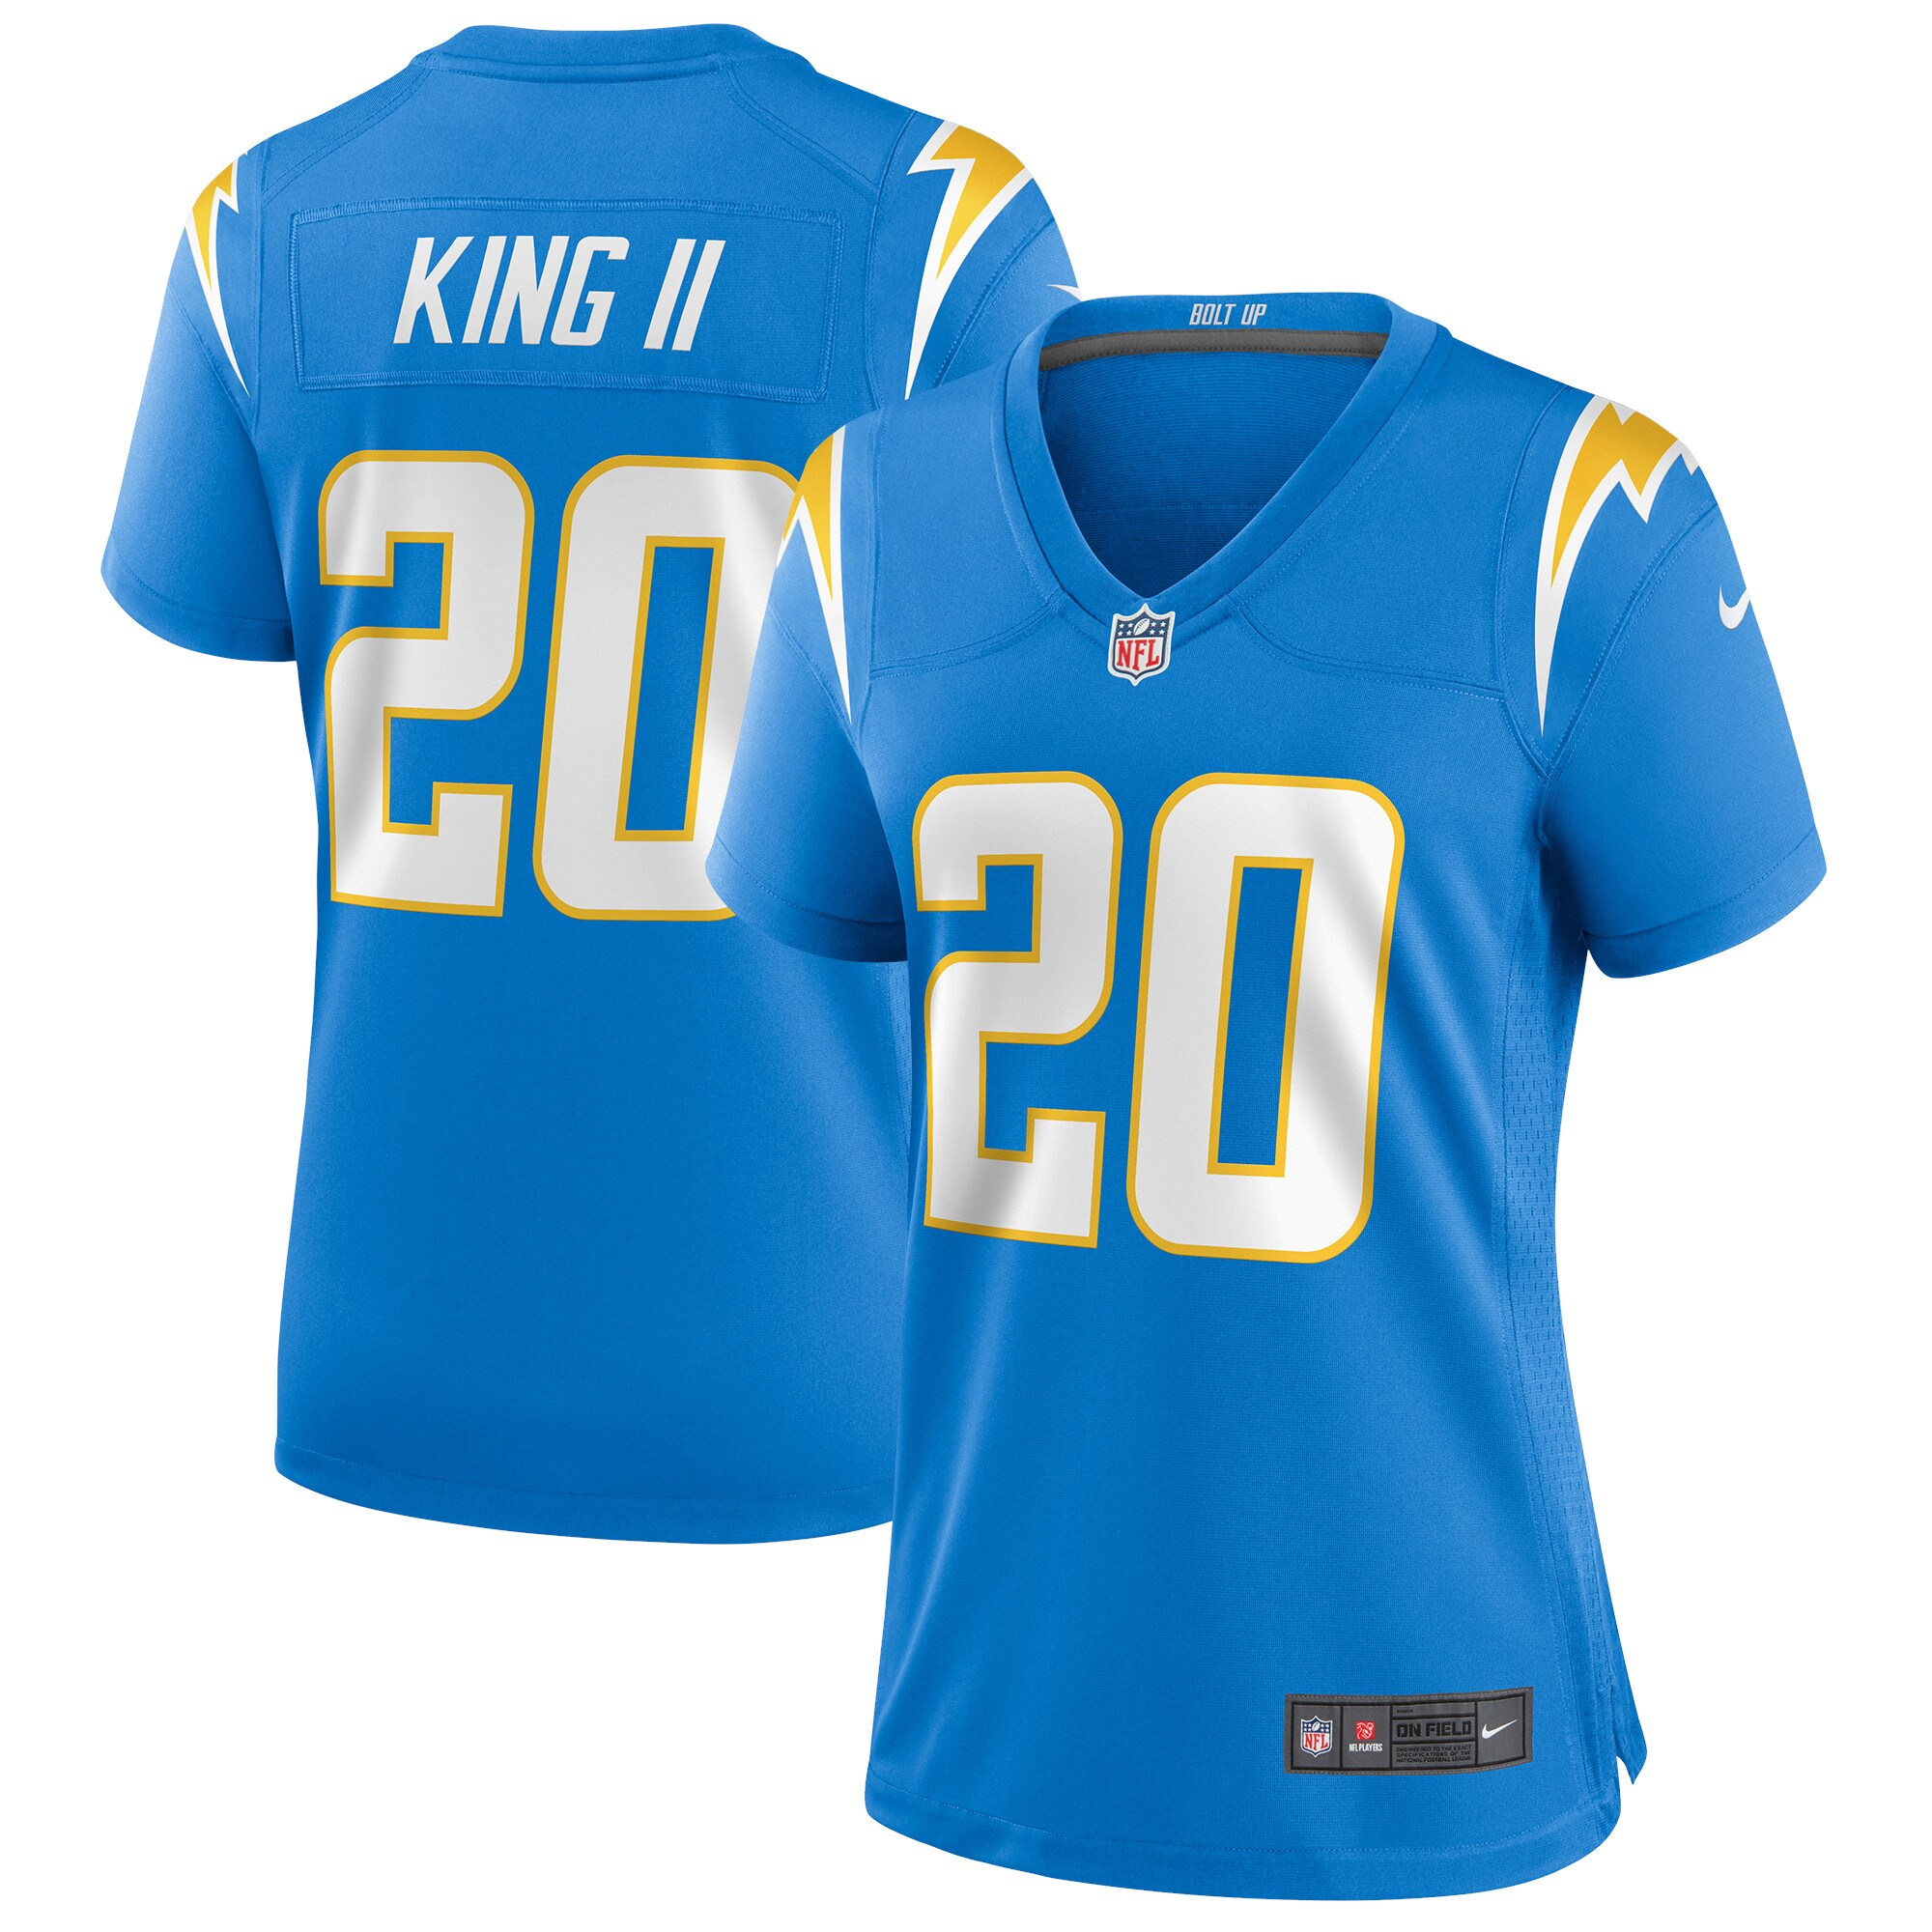 Desmond King Los Angeles Chargers Nike Women's Game Jersey - Powder Blue